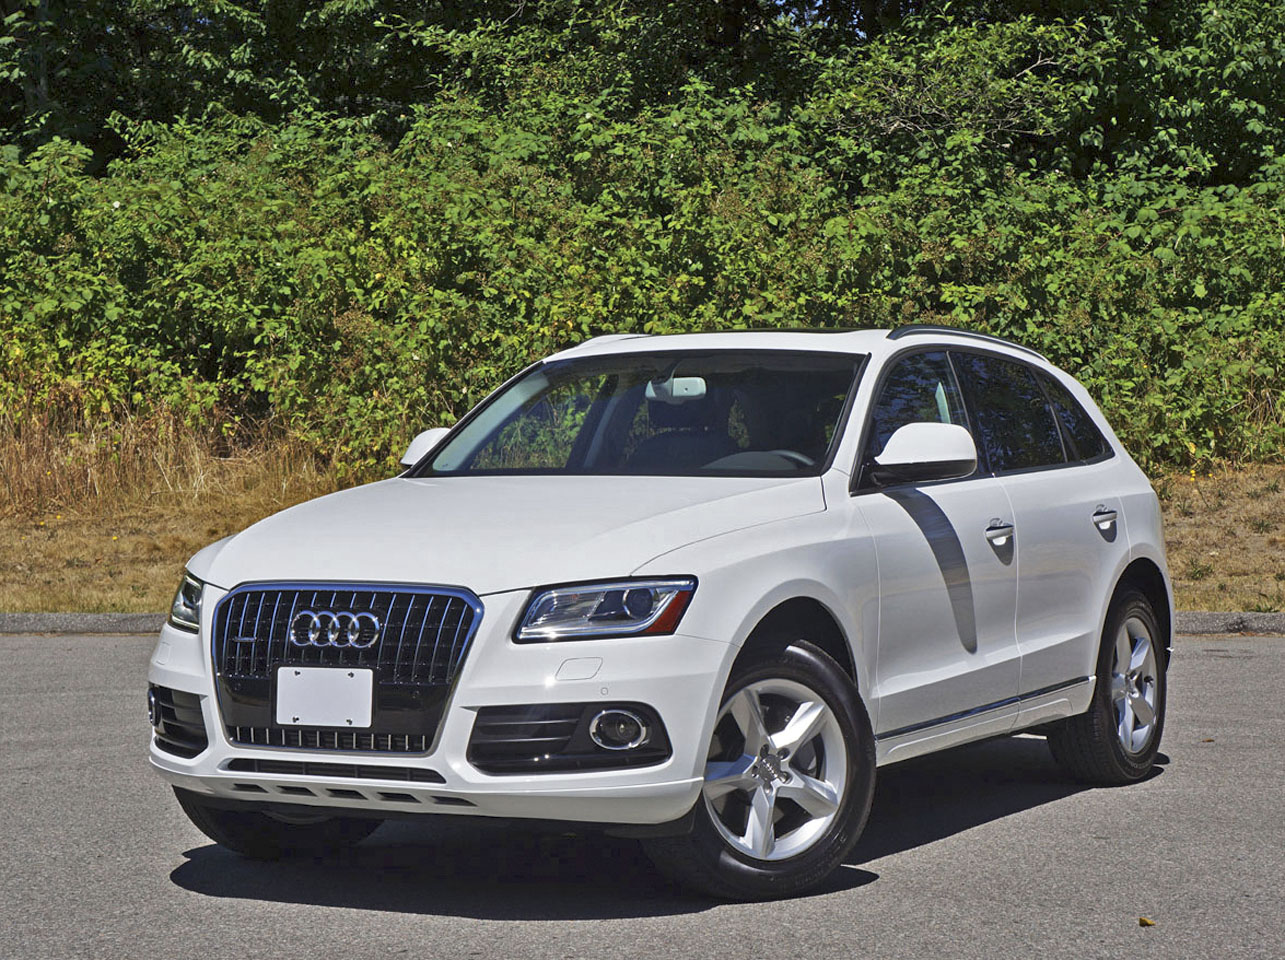 2015 audi q5 3 0 tdi quattro road test review carcostcanada. Black Bedroom Furniture Sets. Home Design Ideas